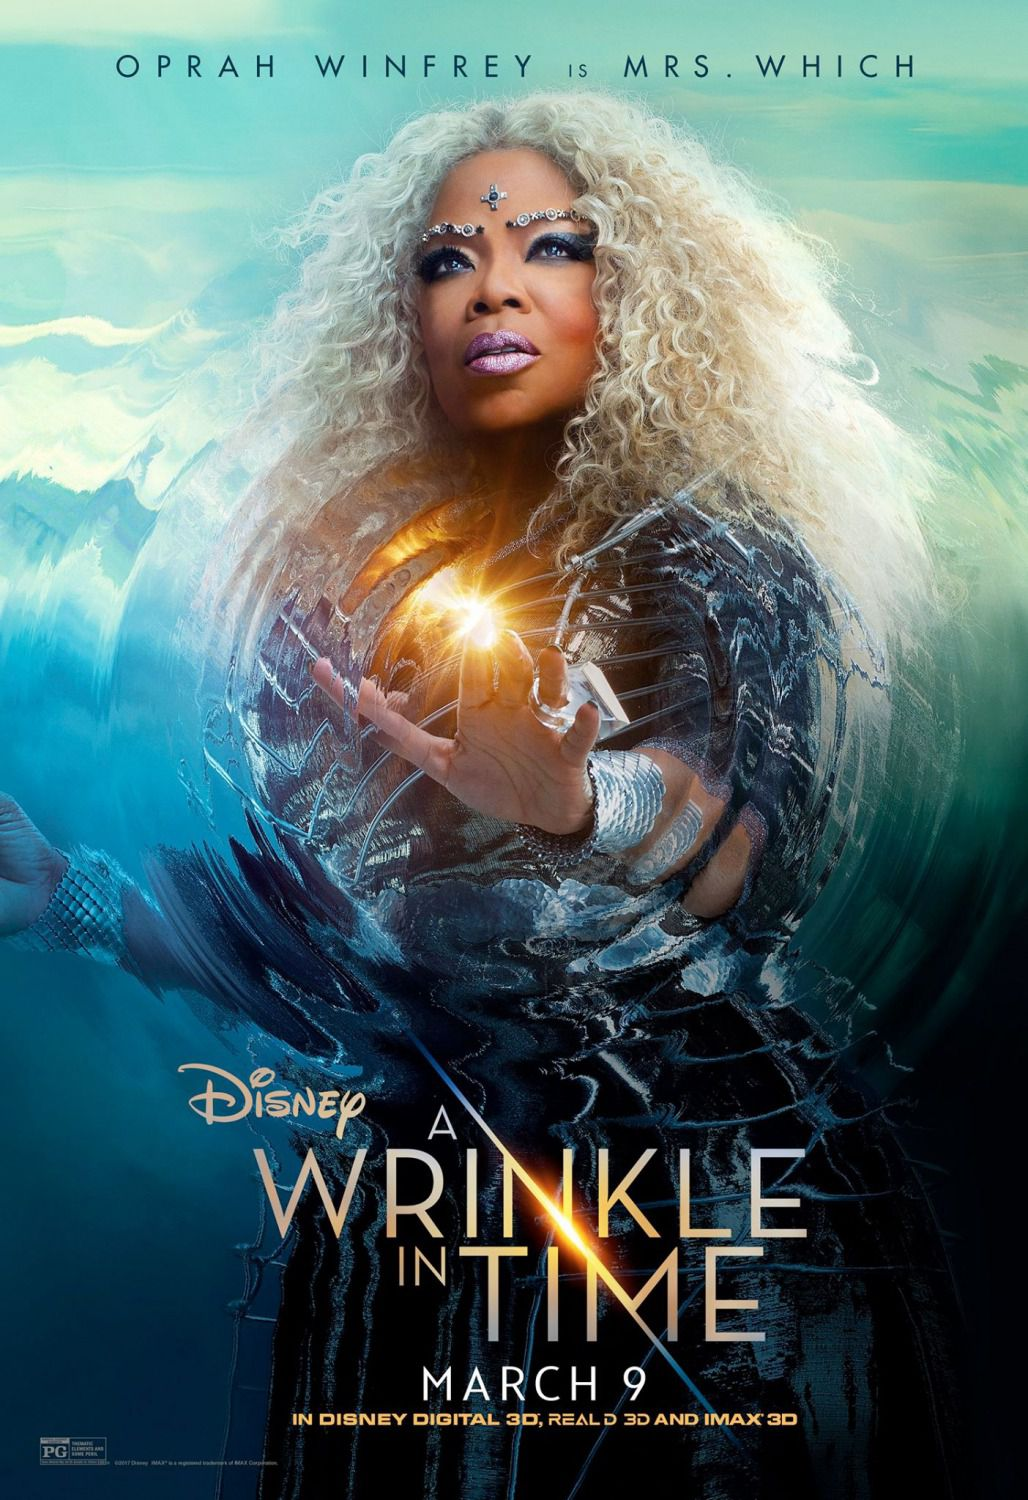 Wrinkle in Time - Oprah Winfrey is Mrs Which